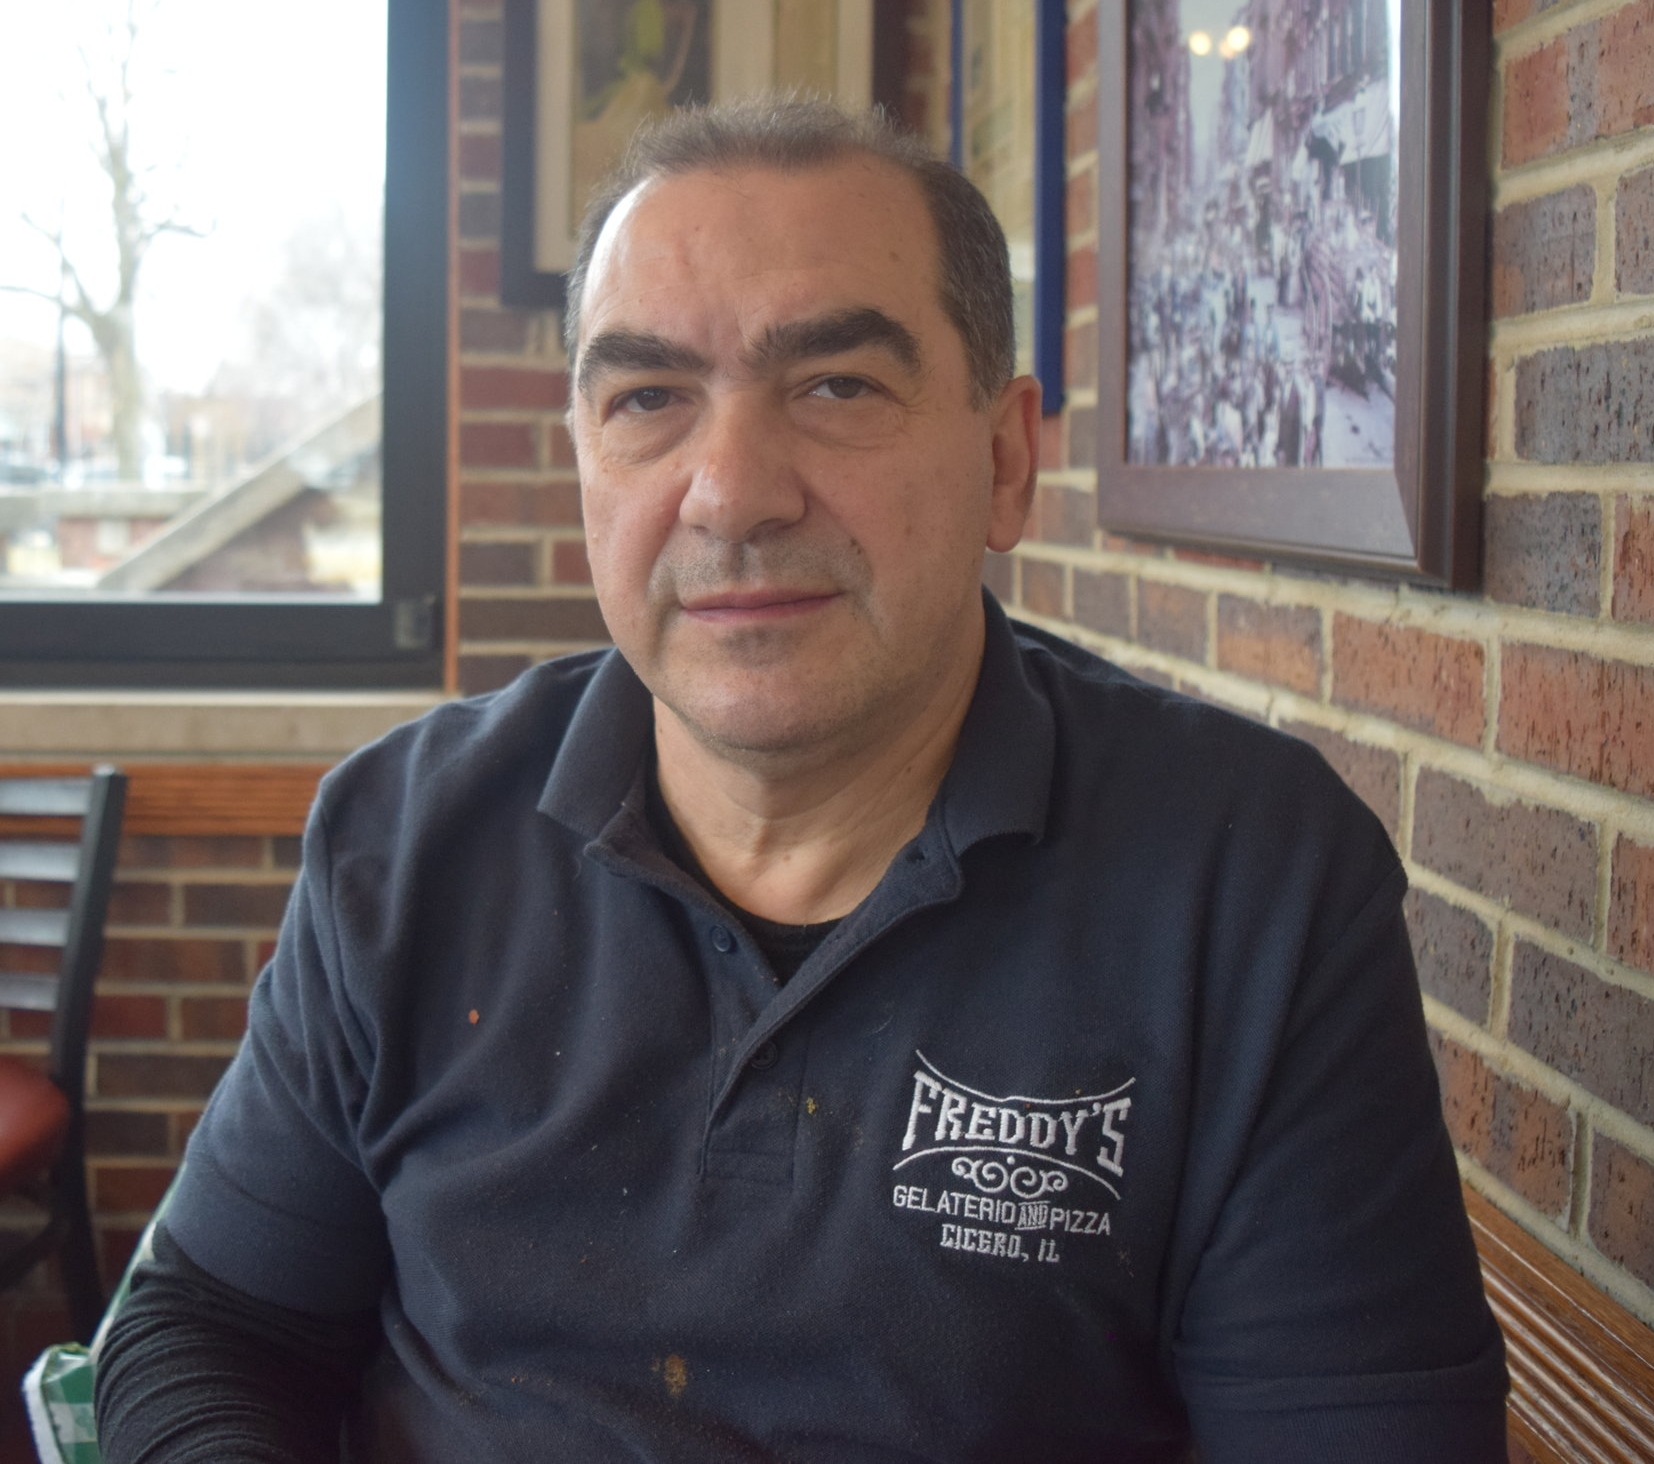 "Giuseppe Quercia   Owner, Freddy's Pizza   ""I started working here [the original location] in 1968. I came from Italy. I was 13 years old. I started cleaning, washing floors, pots and pans. From there, I graduated to make pizzas and make Italian ice. After I finished my senior year of high school, the place was up for sale, and I purchased it. That was the establishment here where we are now. And that was it. I made a lot of changes.  We added on a deli, Italian lunch meat, Italian products. Before it was just a lot of things to survive – it was a 2-3 person operation. Now we have about 10 or 11 people working for us. This all started in 1973. I went back for my first trip back to Italy in 1978-1979, and I brought a lot of ideas that I see there like the trattoria style and the gelato. When we started, it was a little rocky road because people were not aware, but now gelato is very popular. I met my wife here too. We both took an adventure and got married in 1983. From that point on, we build on, build on, and build on and became a place to stop. Last week, there were some customers who stopped in who wanted to see me and talk to me, and I realized they were the 4th generation [of the family] I am taking care of. Next March, it's going to be 50 years I've been doing this. Some of these kids are coming here, well I call them kids, but their grandparents used to bring them here. Now they're bringing their kids, and some of their kids are getting married. For a little small place, you see very few places like this. New York you see a lot of them. But here, it seems like in Chicago everything is commercialized. Everything has to be big. These ma's and pa's are dying out. There's a love and a lot of dedication into this business. It's rewarding too at the end of the week. We were able to show people beyond meatballs, pasta, and spaghetti, there's more other Italian foods. It's a beautiful atmosphere when you come and see all these people that you know – such a great feeling. I have a great group working for me. They've been here for years. I have people here from 30 years, 20 years, 10 years, so we're very fortunate and happy. Our customers when they walk in, they always feel at home, but also with the workers I believe you always have to give them what's fair, and you have to give them a lot of respect. You can't build something on your own…Cicero, after Naples, Italy, has always been my place to live. Cicero has given me a lot. A lot of people tell me 'What are you still doing here? You could be so many places'. But Cicero is my kind of town."""